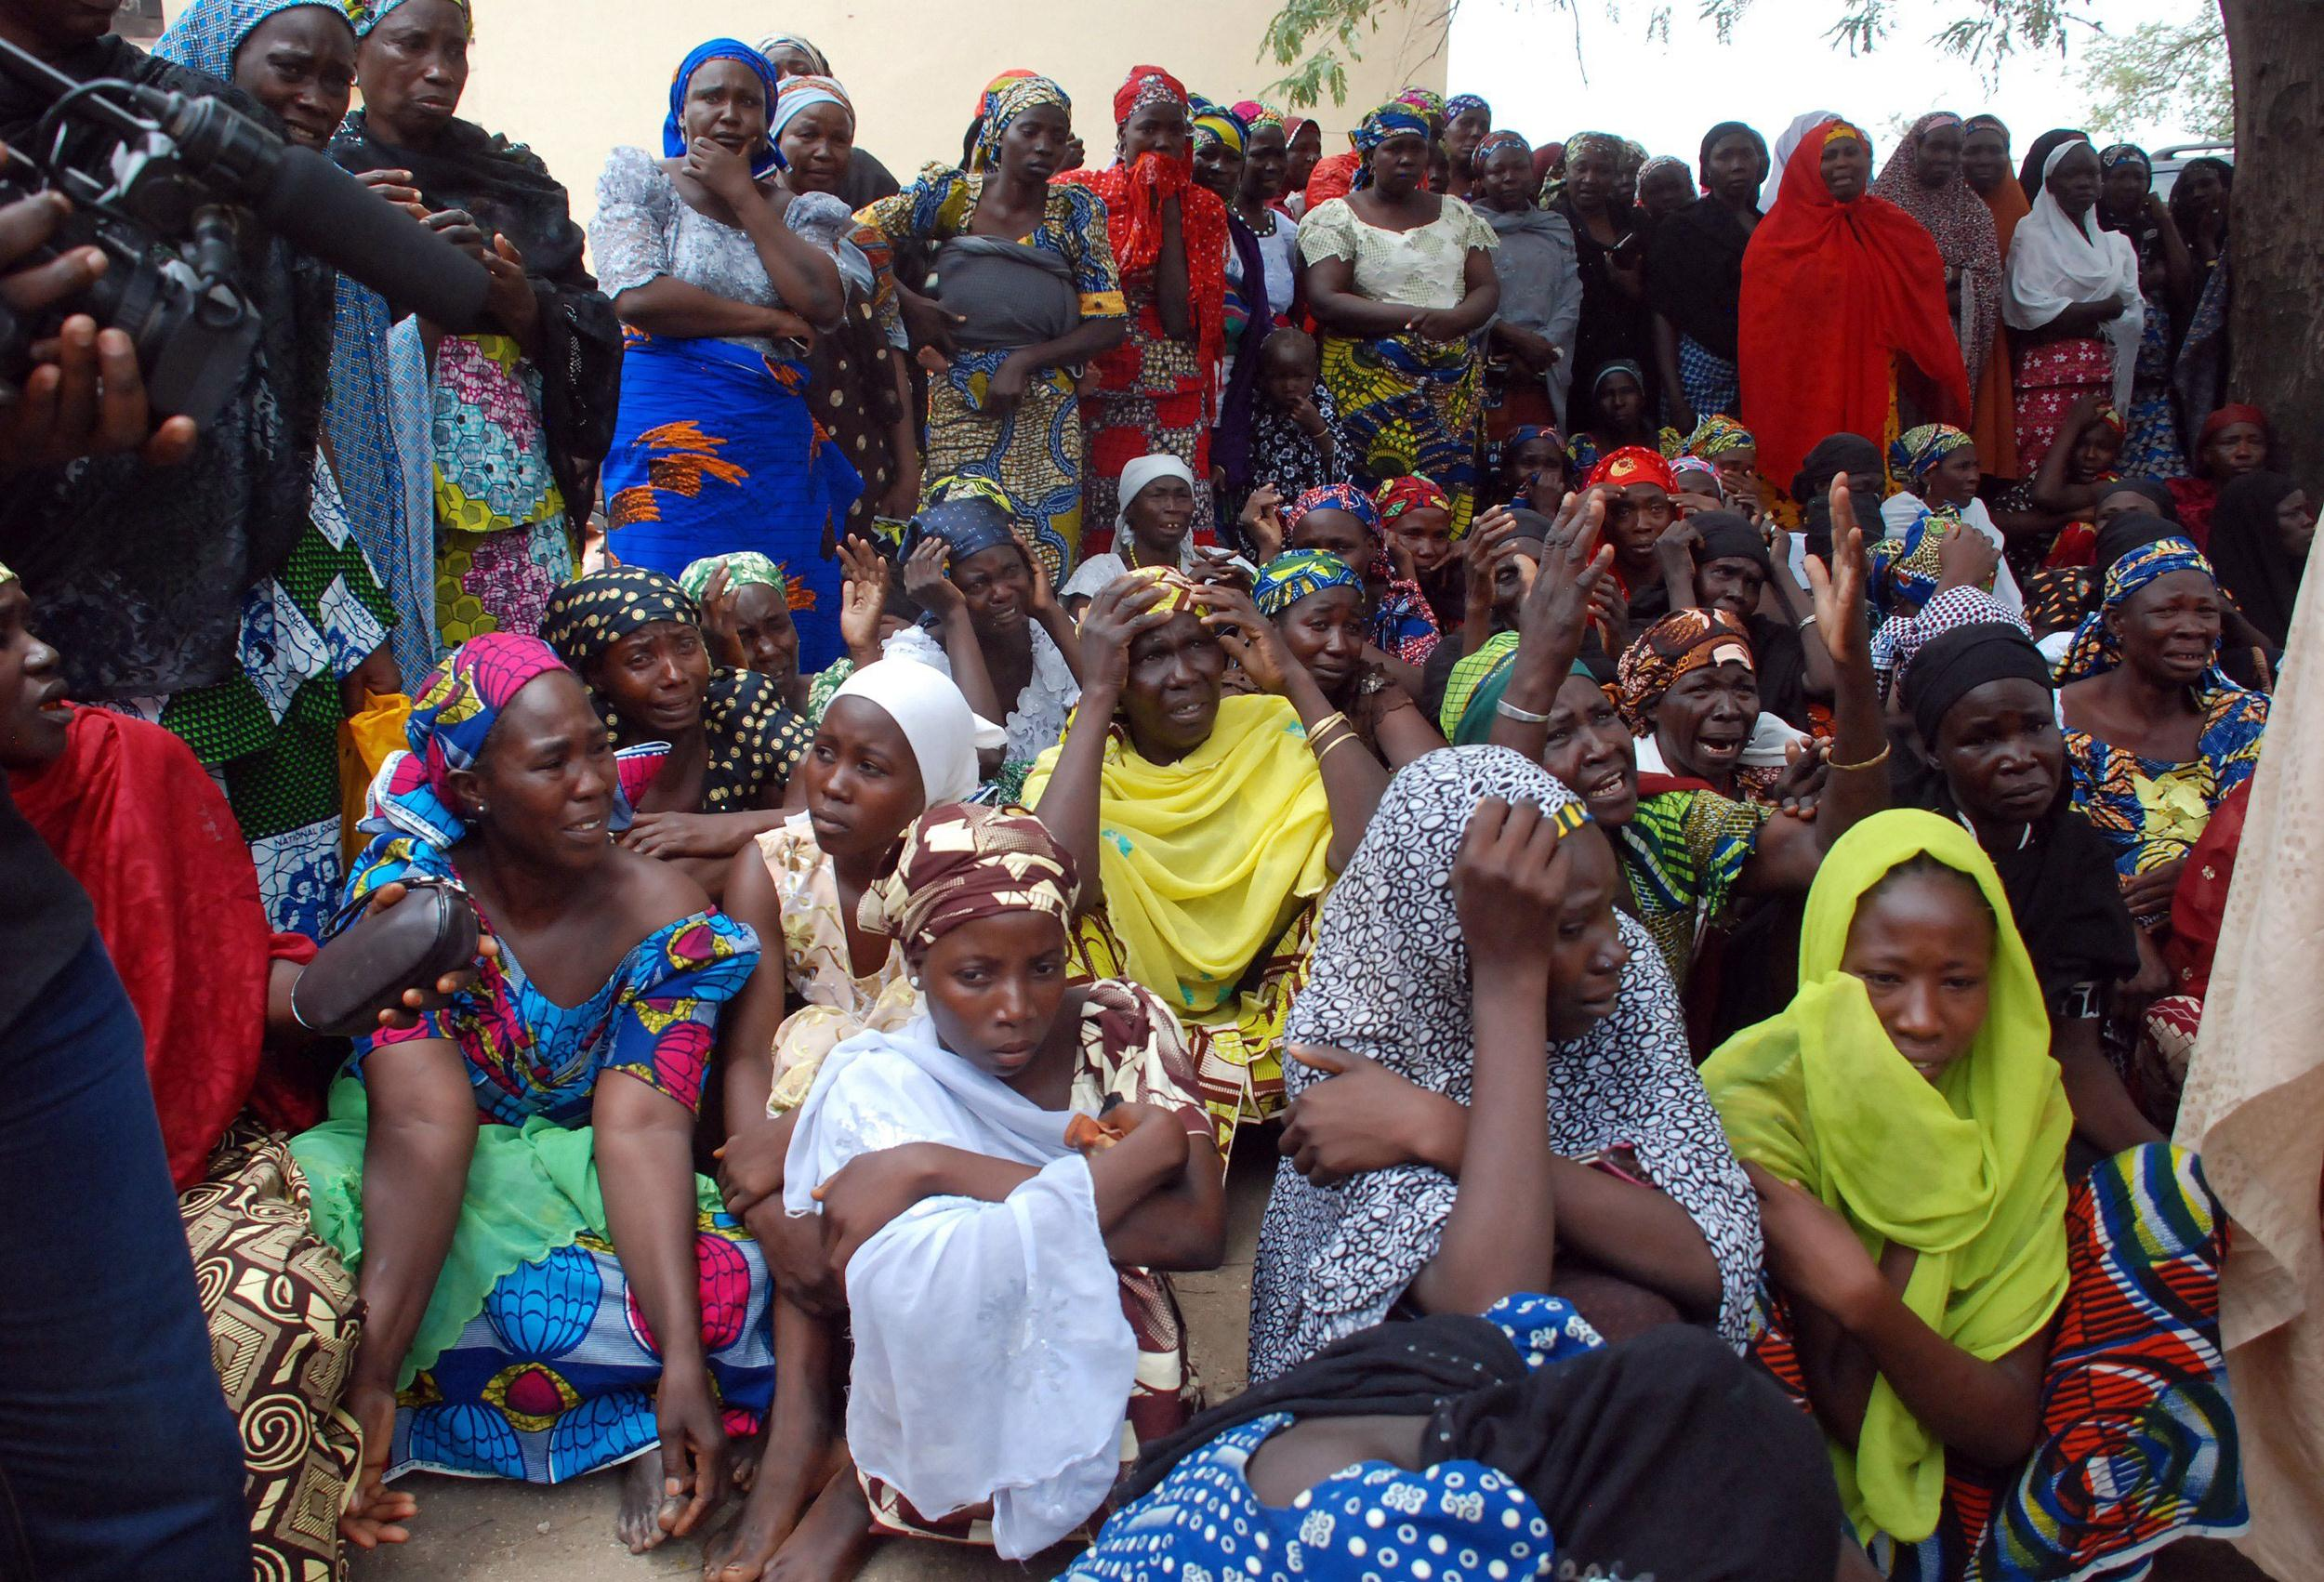 Image: Mothers of the missing Chibok schoolgirls abducted by Boko Haram